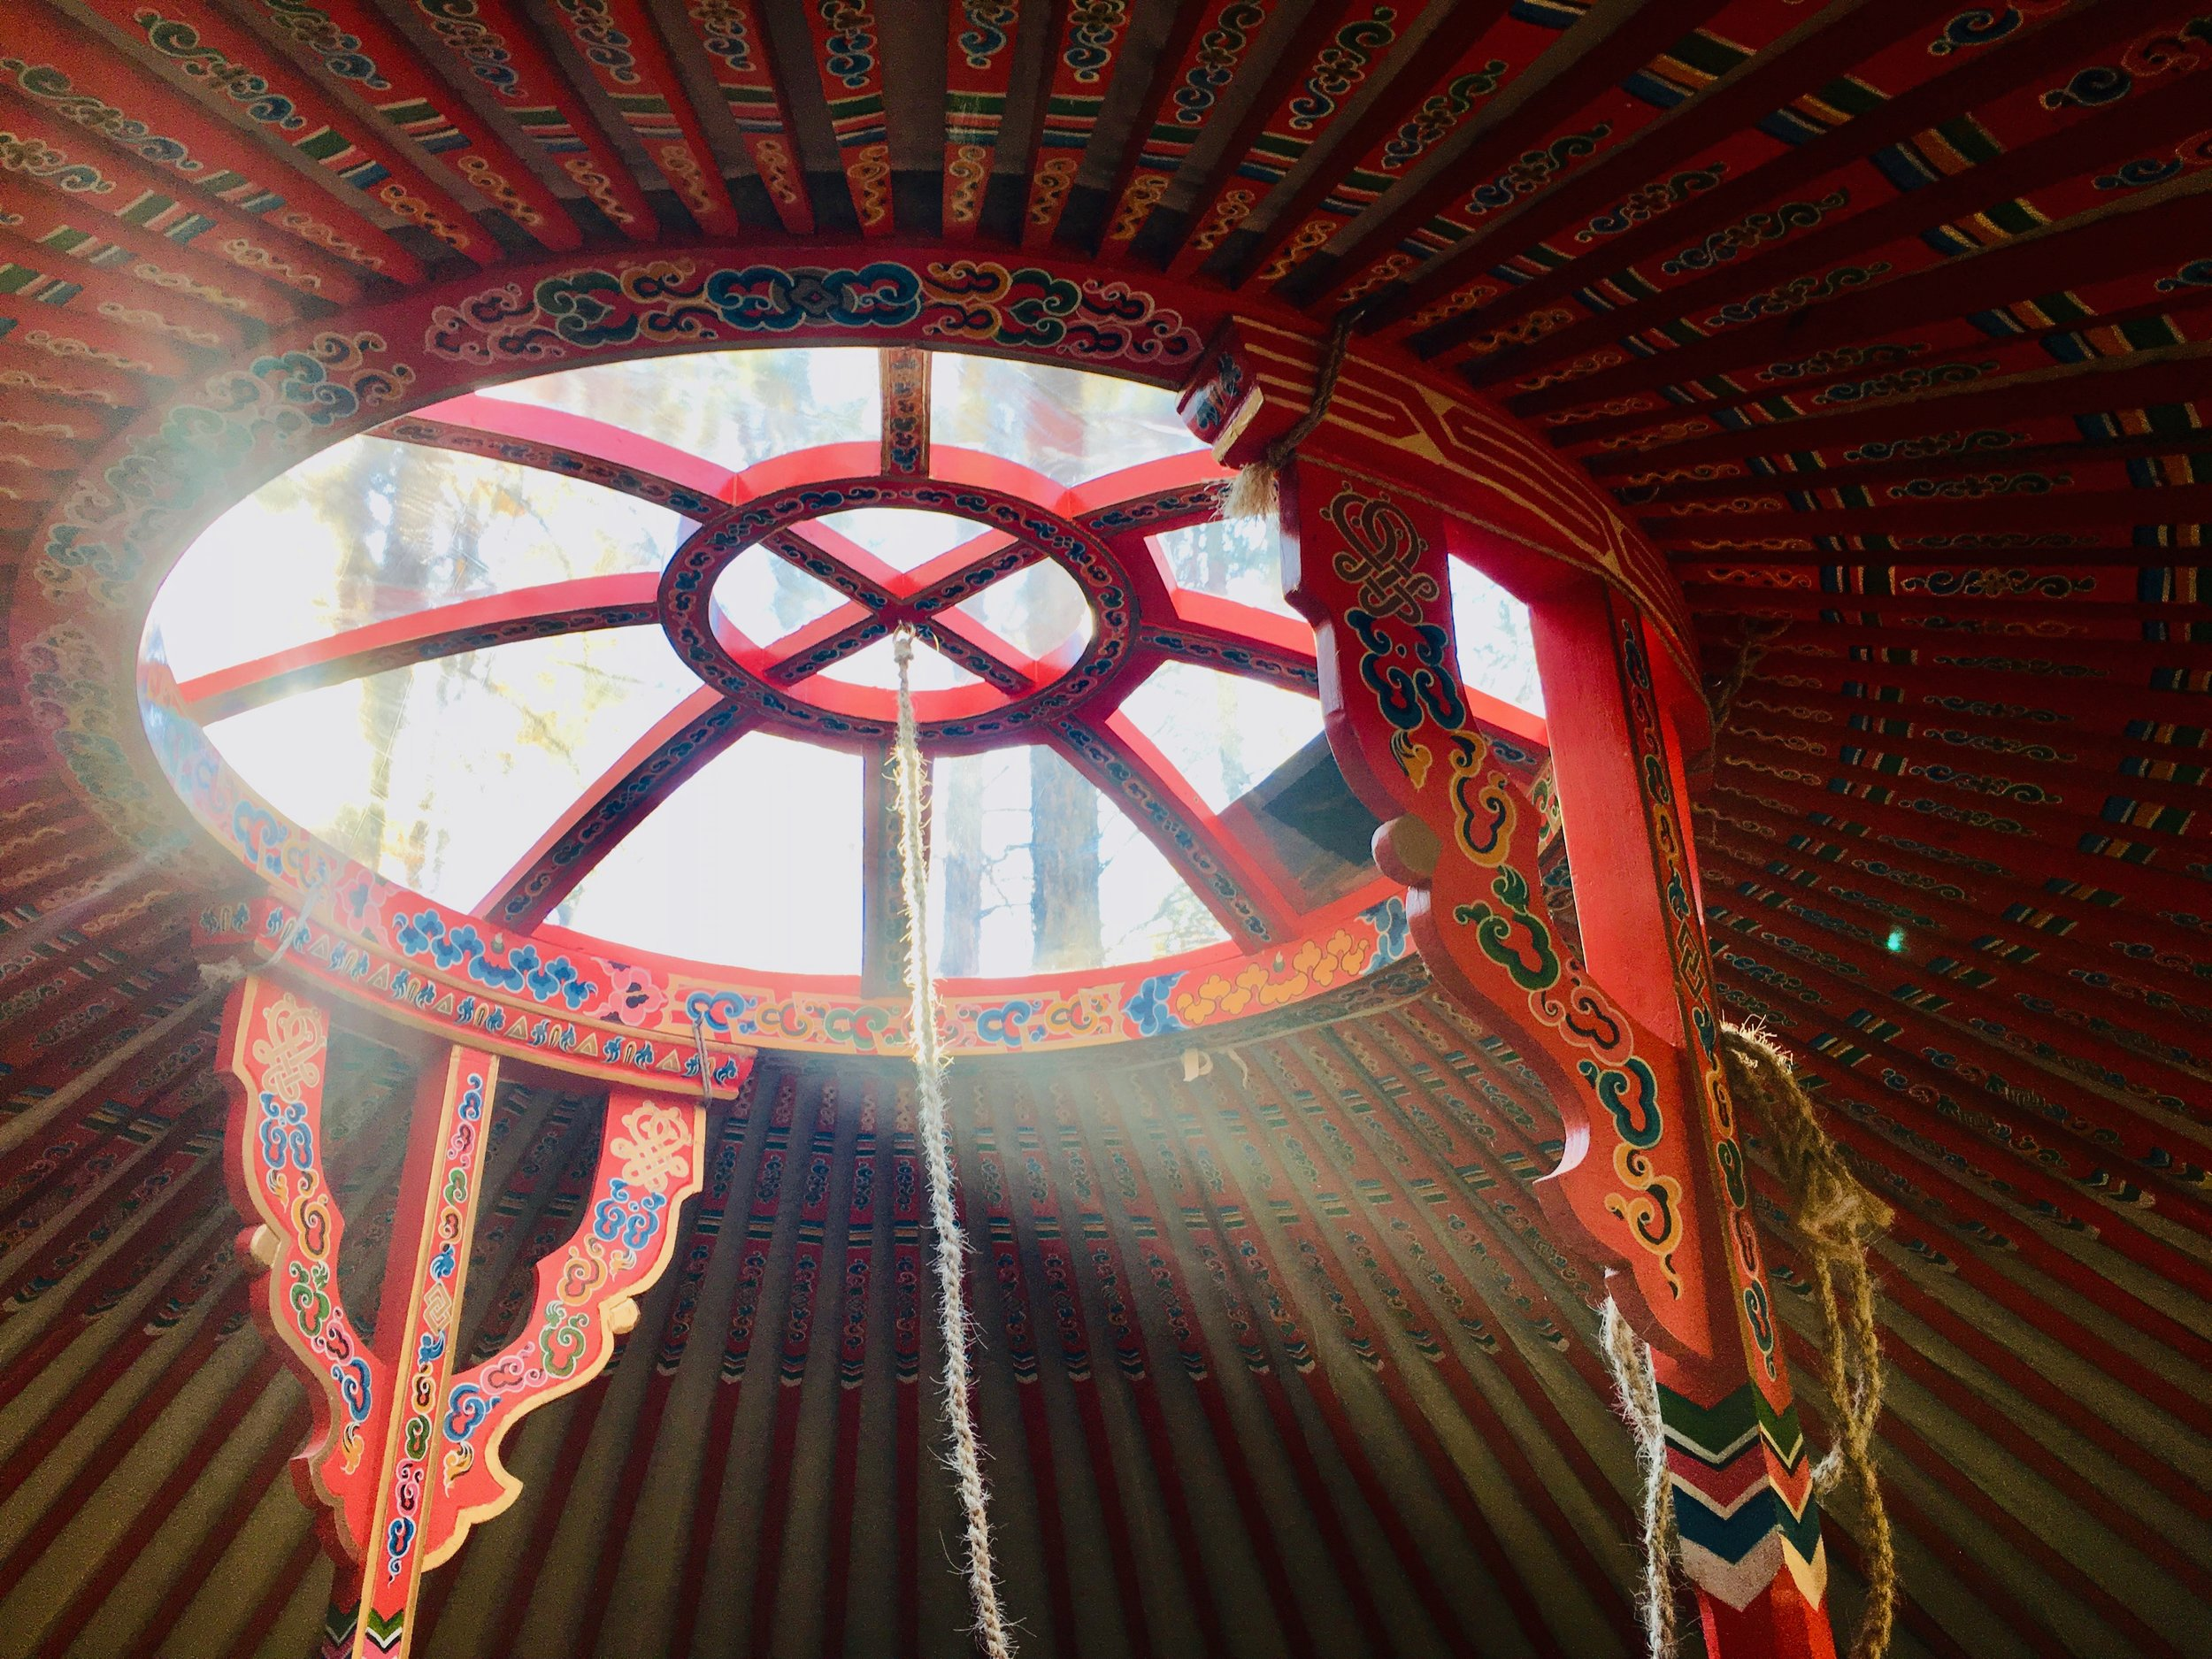 mount shasta retreat center - sessions take place at the retreat center's mongolian yurt during their retreats and gatherings. check out the EVENTS page for more details.